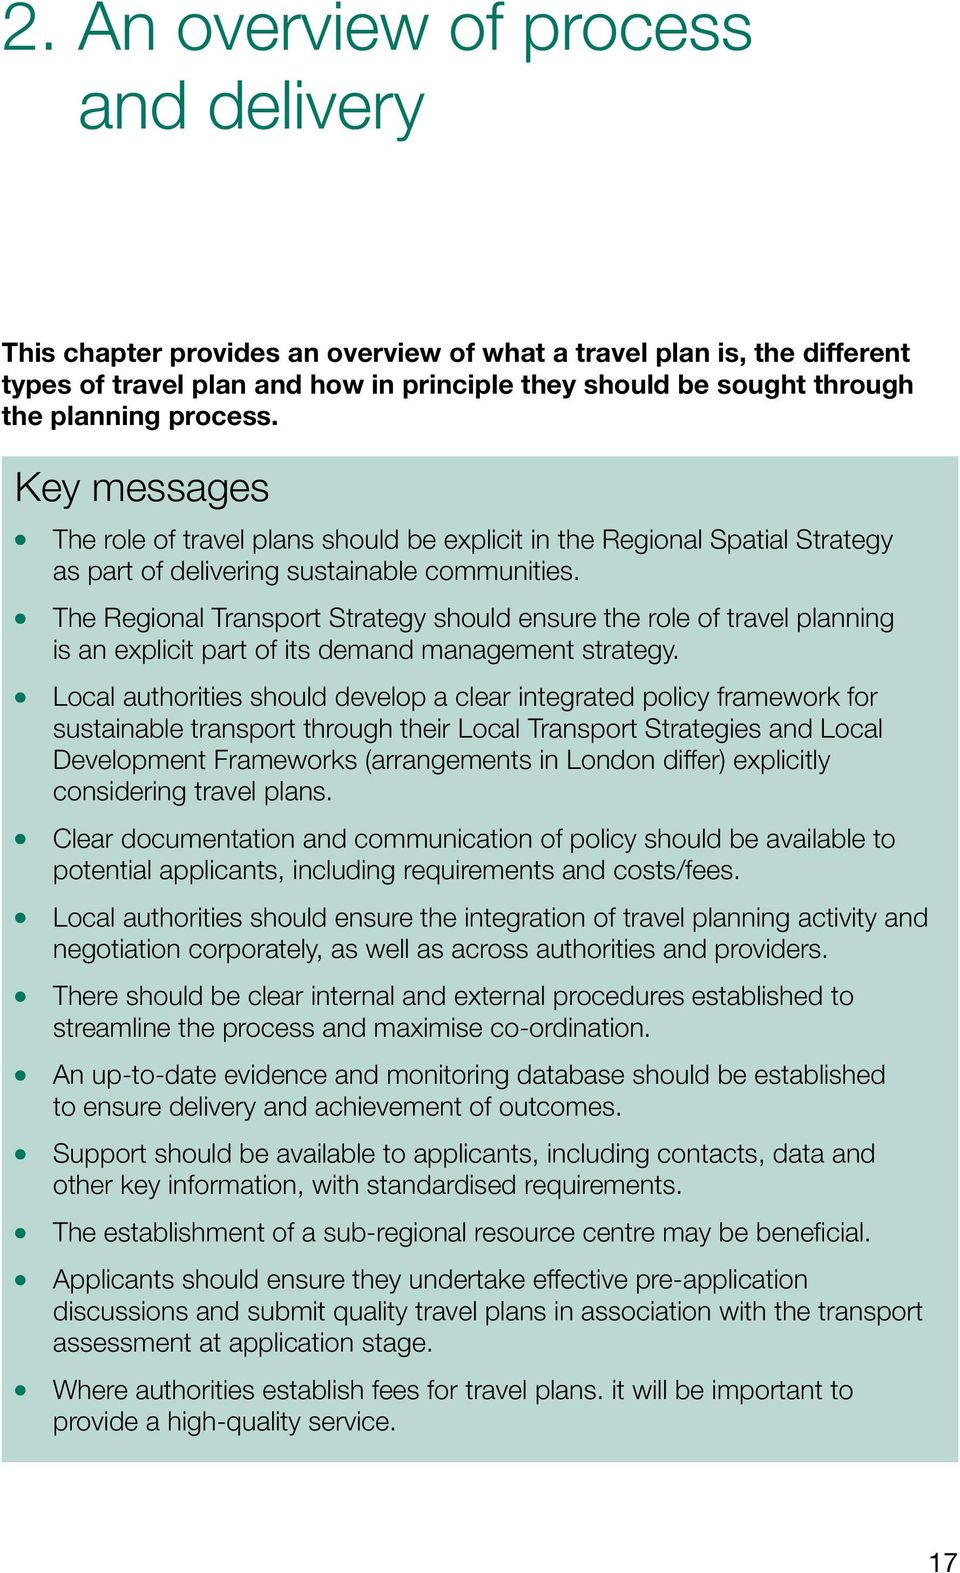 The Regional Transport Strategy should ensure the role of travel planning is an explicit part of its demand management strategy.